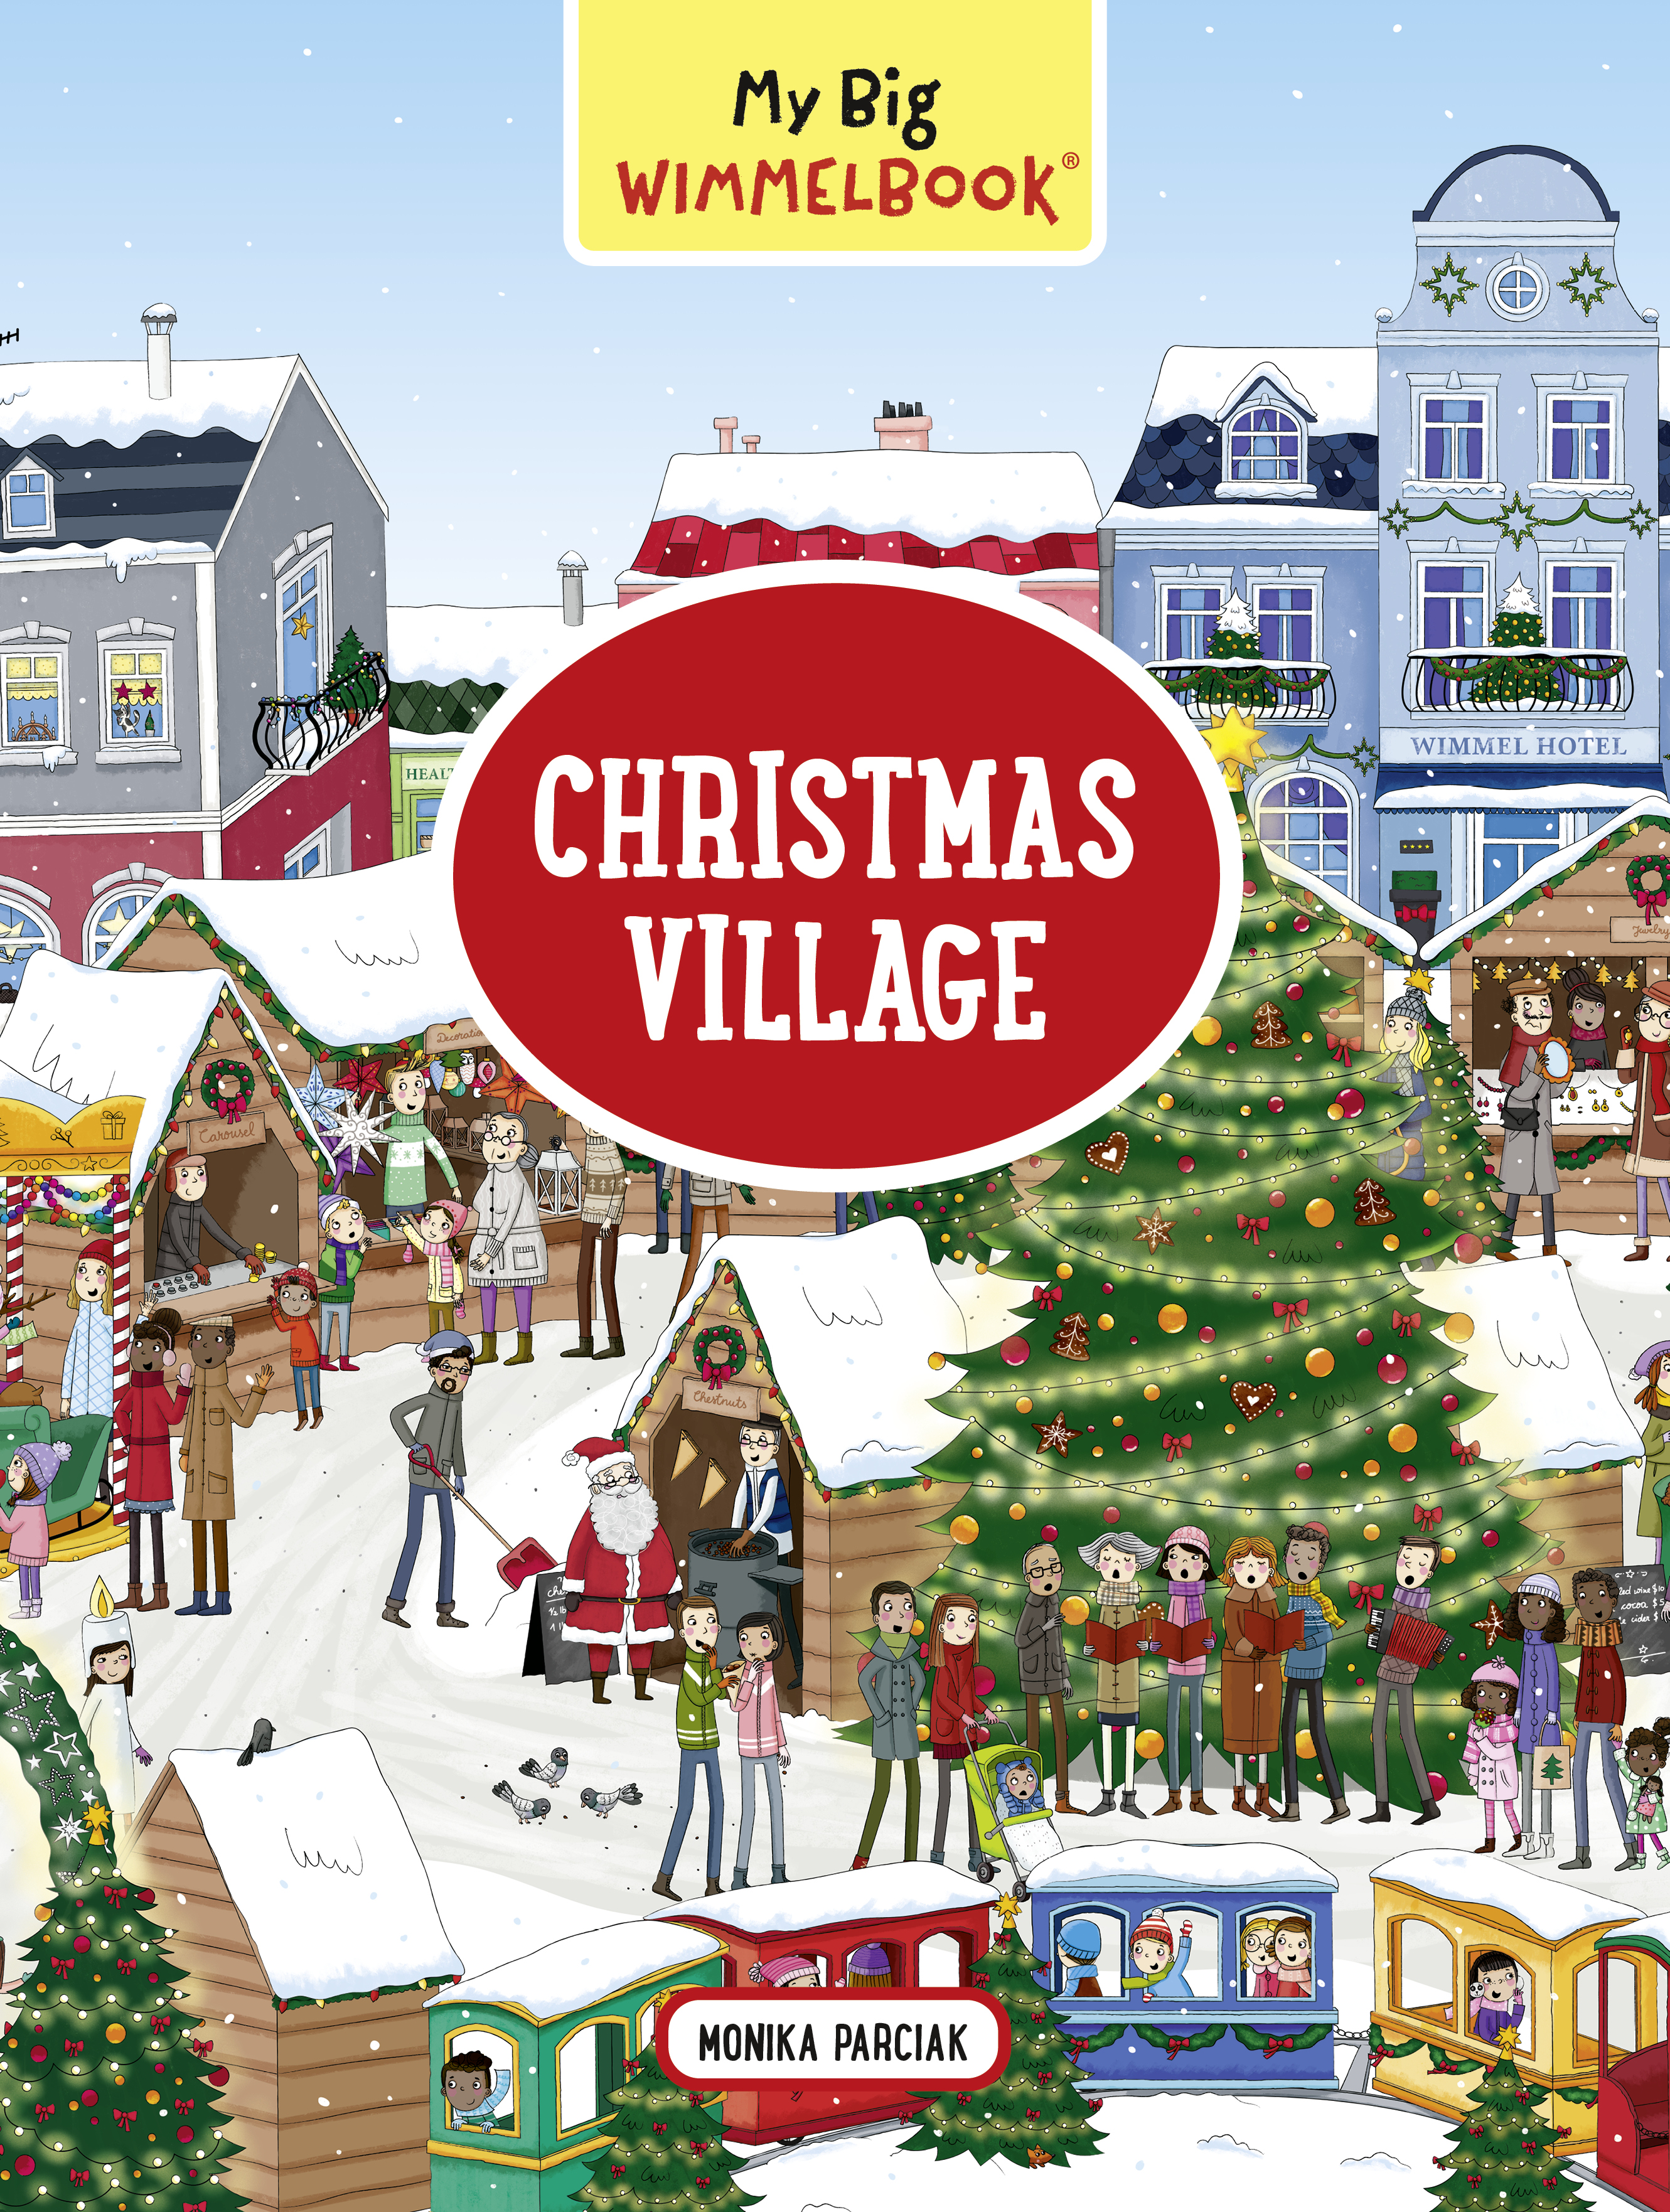 My Big Wimmelbook—Christmas Village